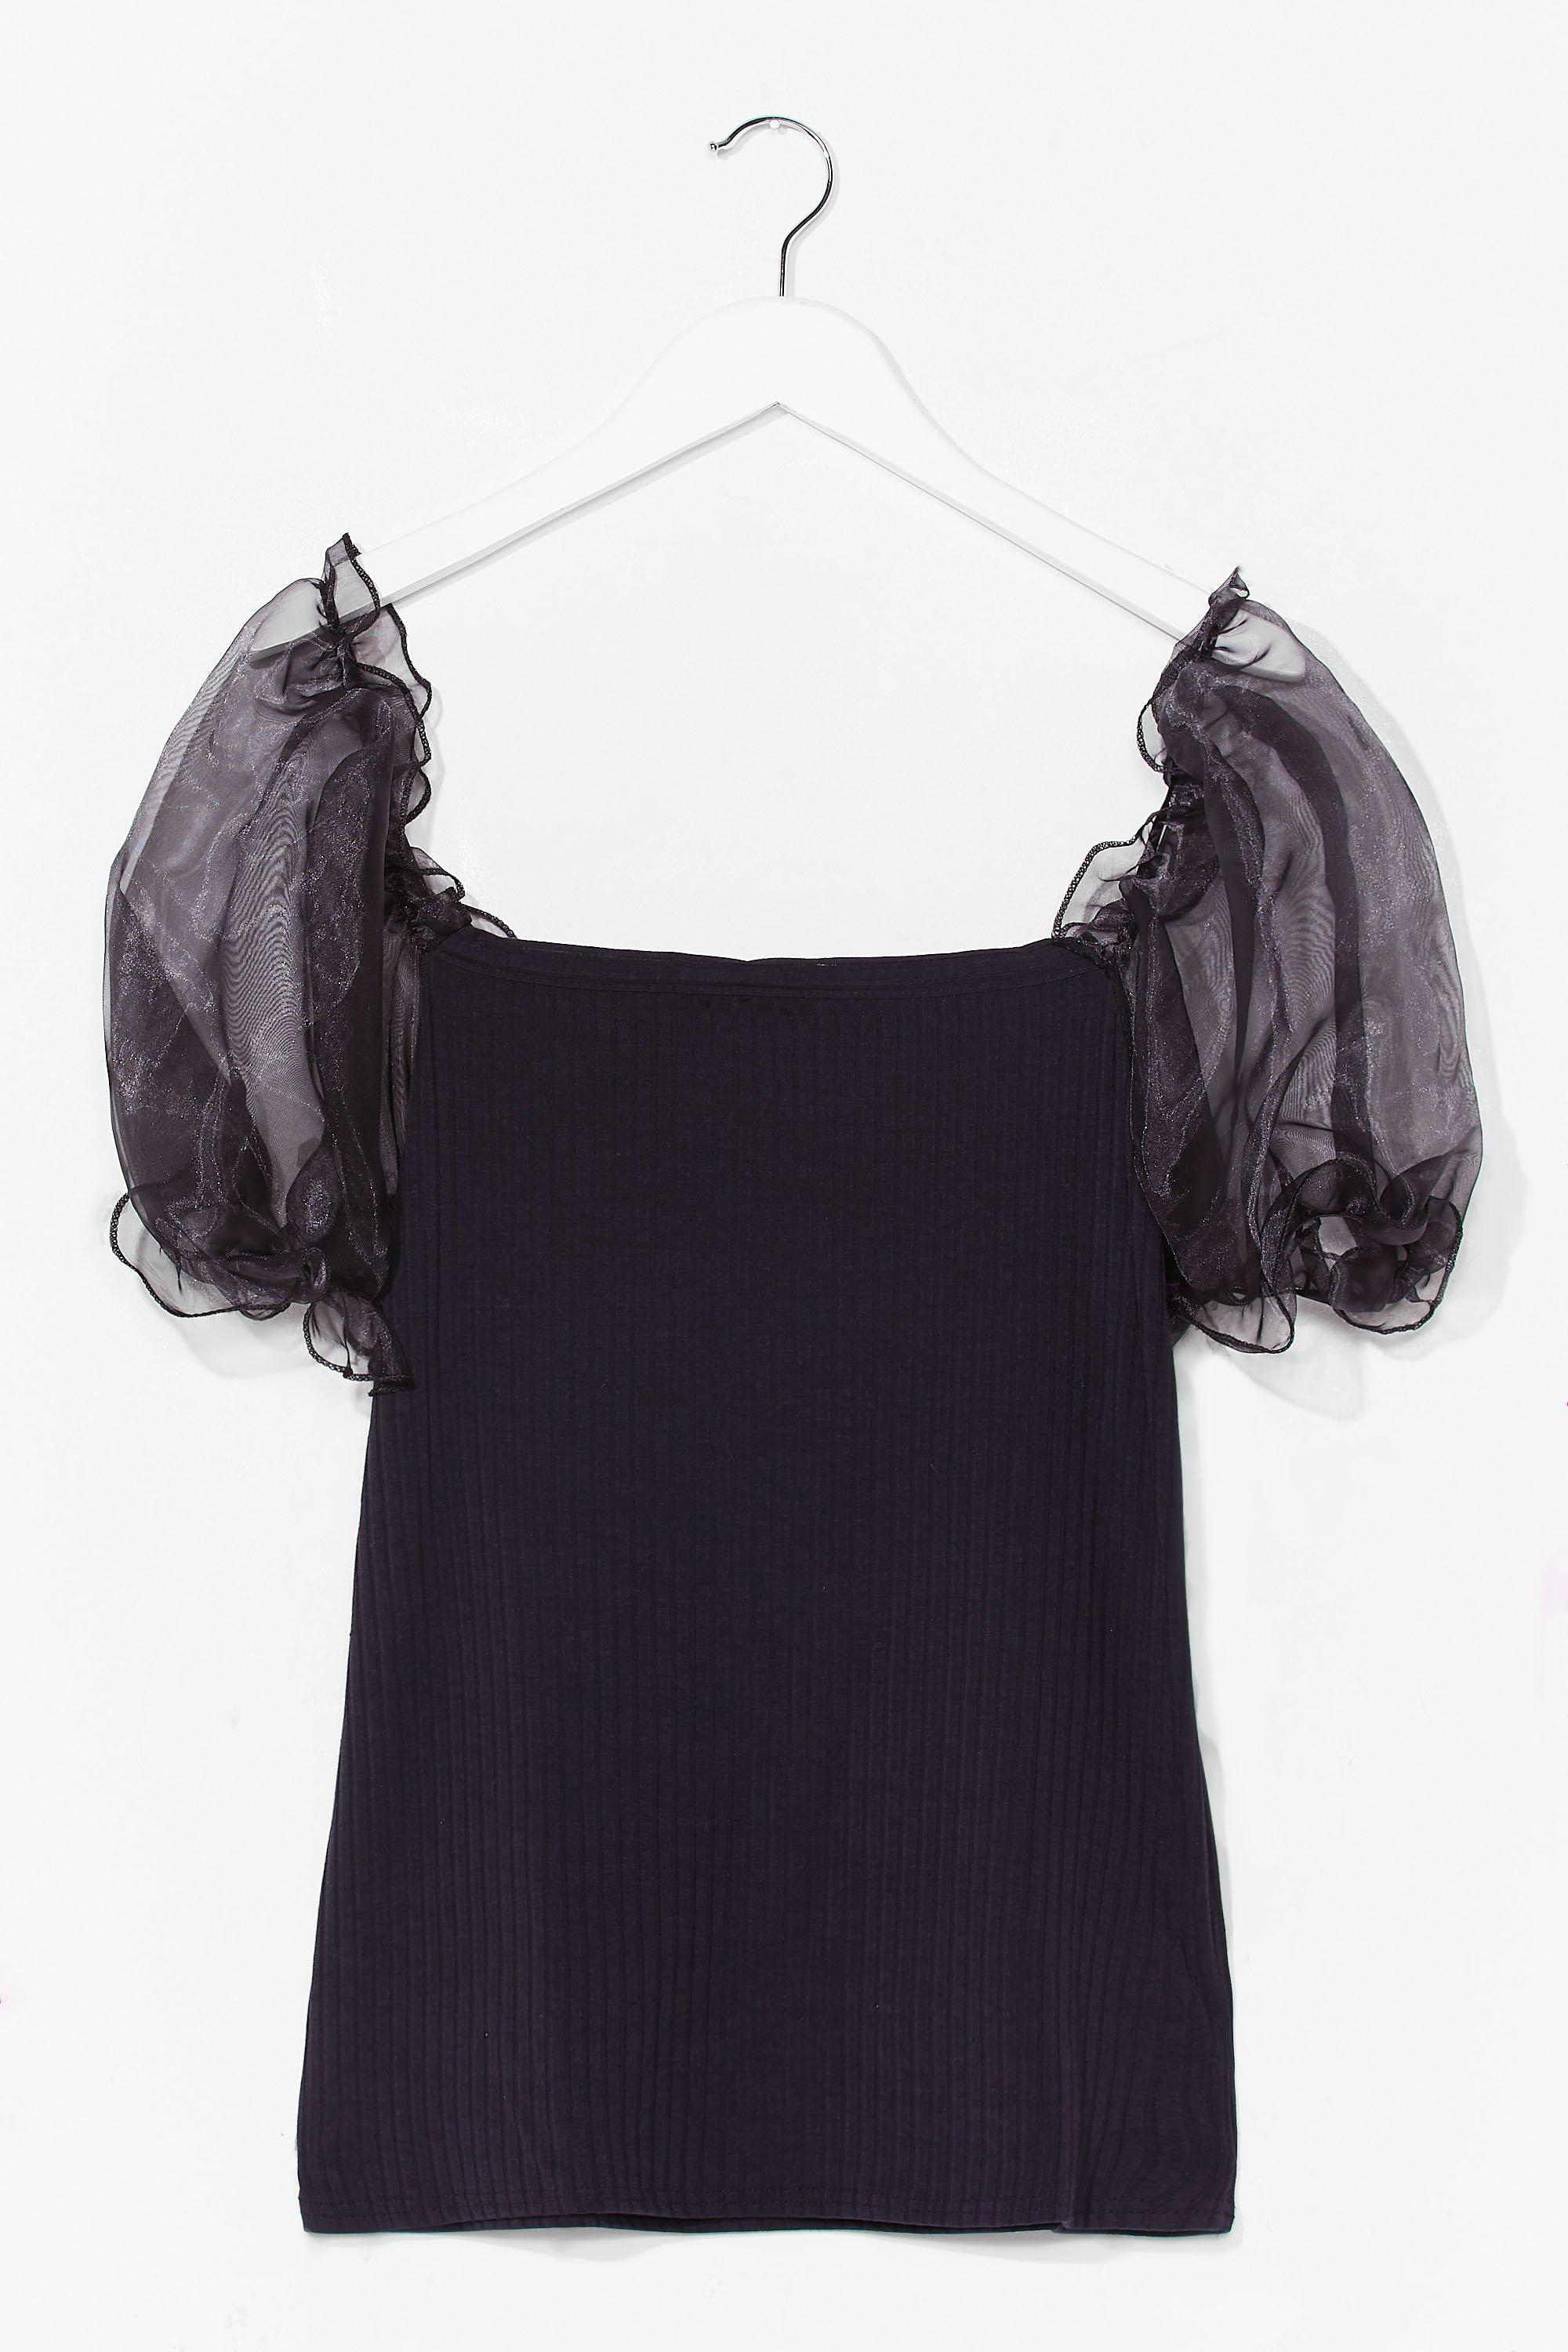 Catch a Preview Plus Organza Sleeve Top 8